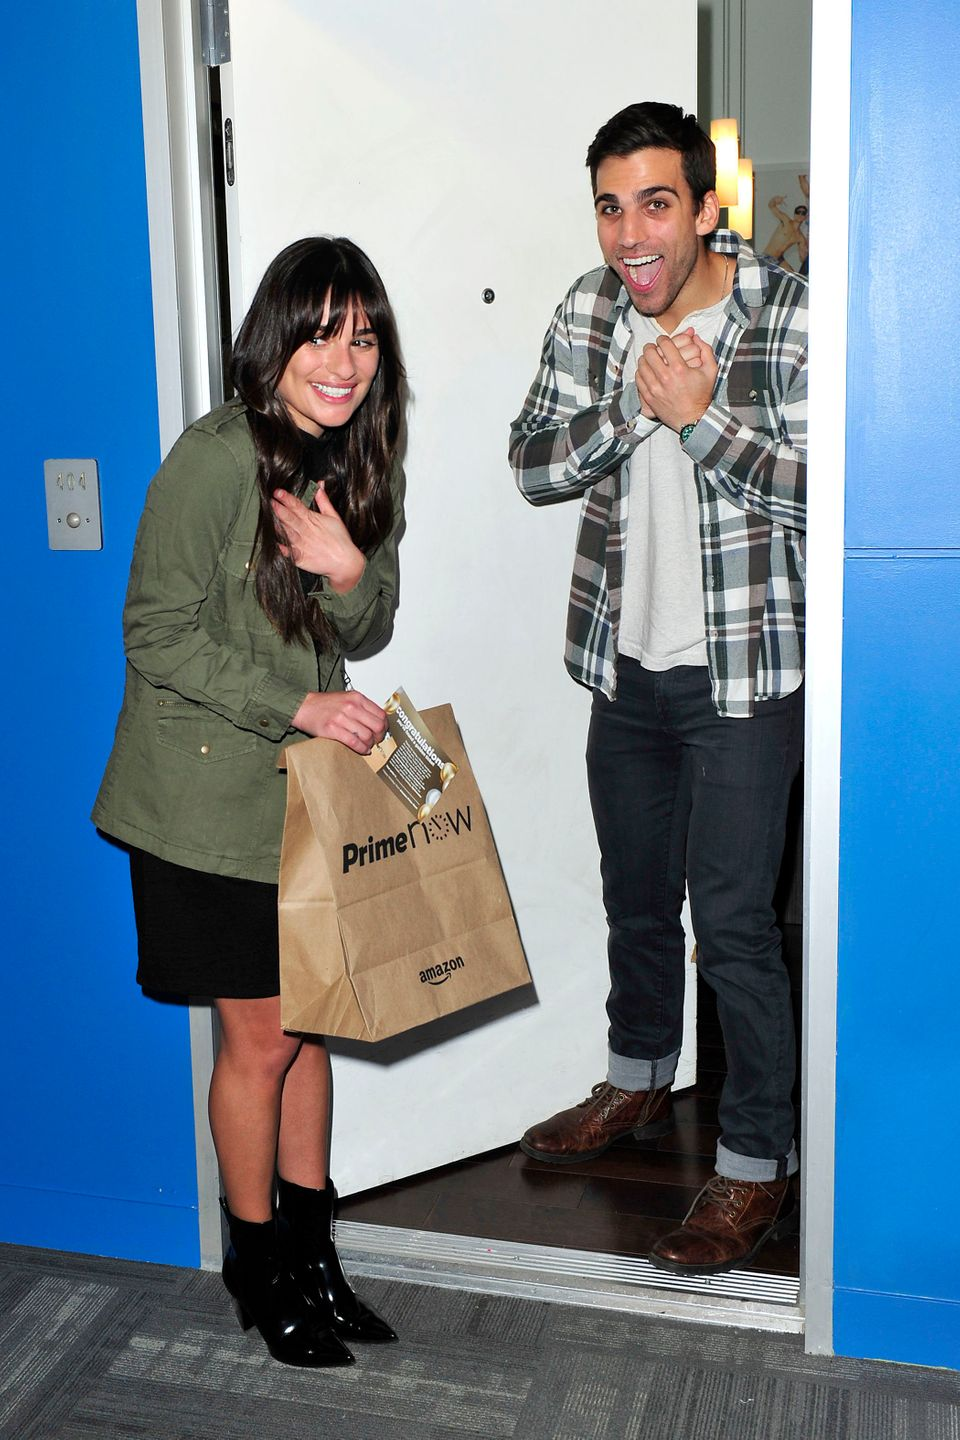 Lea Michele surprises an Amazon Prime Now customer in LA with a Golden Ticket prize.